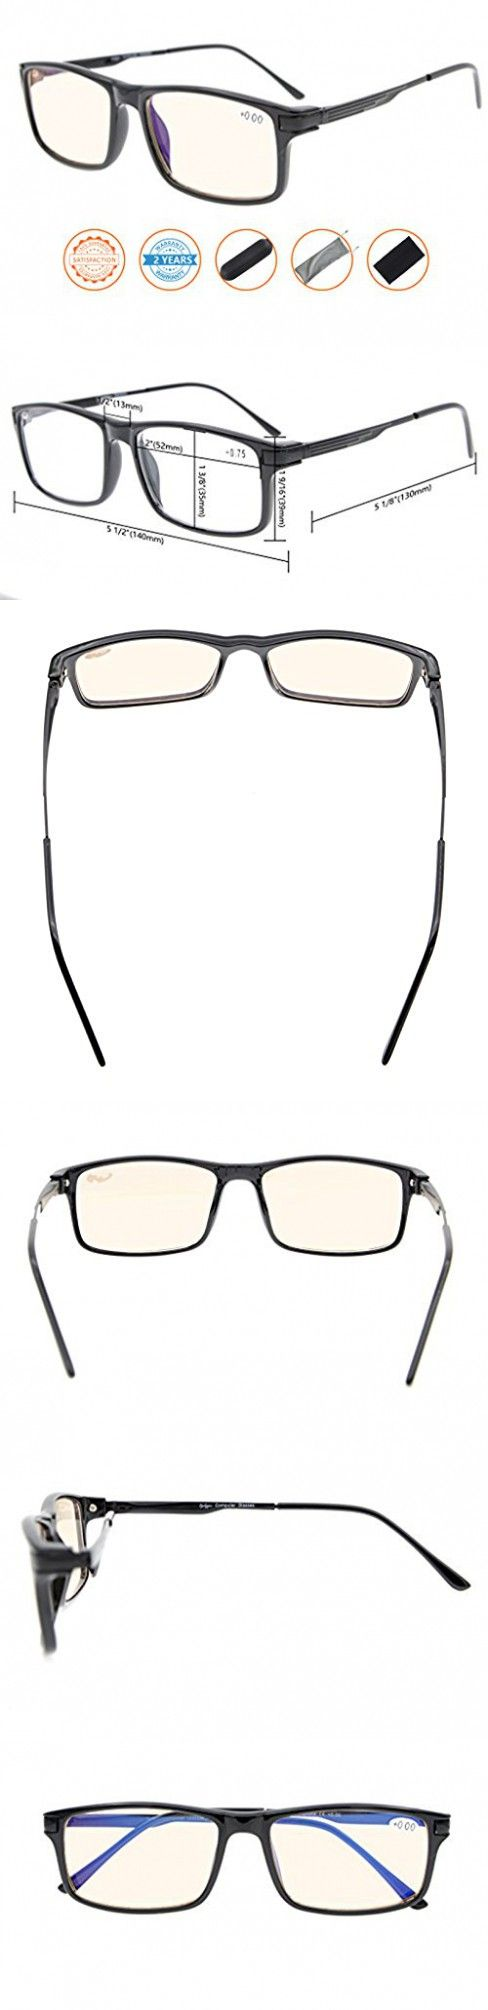 Reduces Eyestrain,Anti Blue Rays,UV Protection,Spring Hinges,Computer Gaming Reading Glasses(Black,Amber Tinted Lens)  0.75